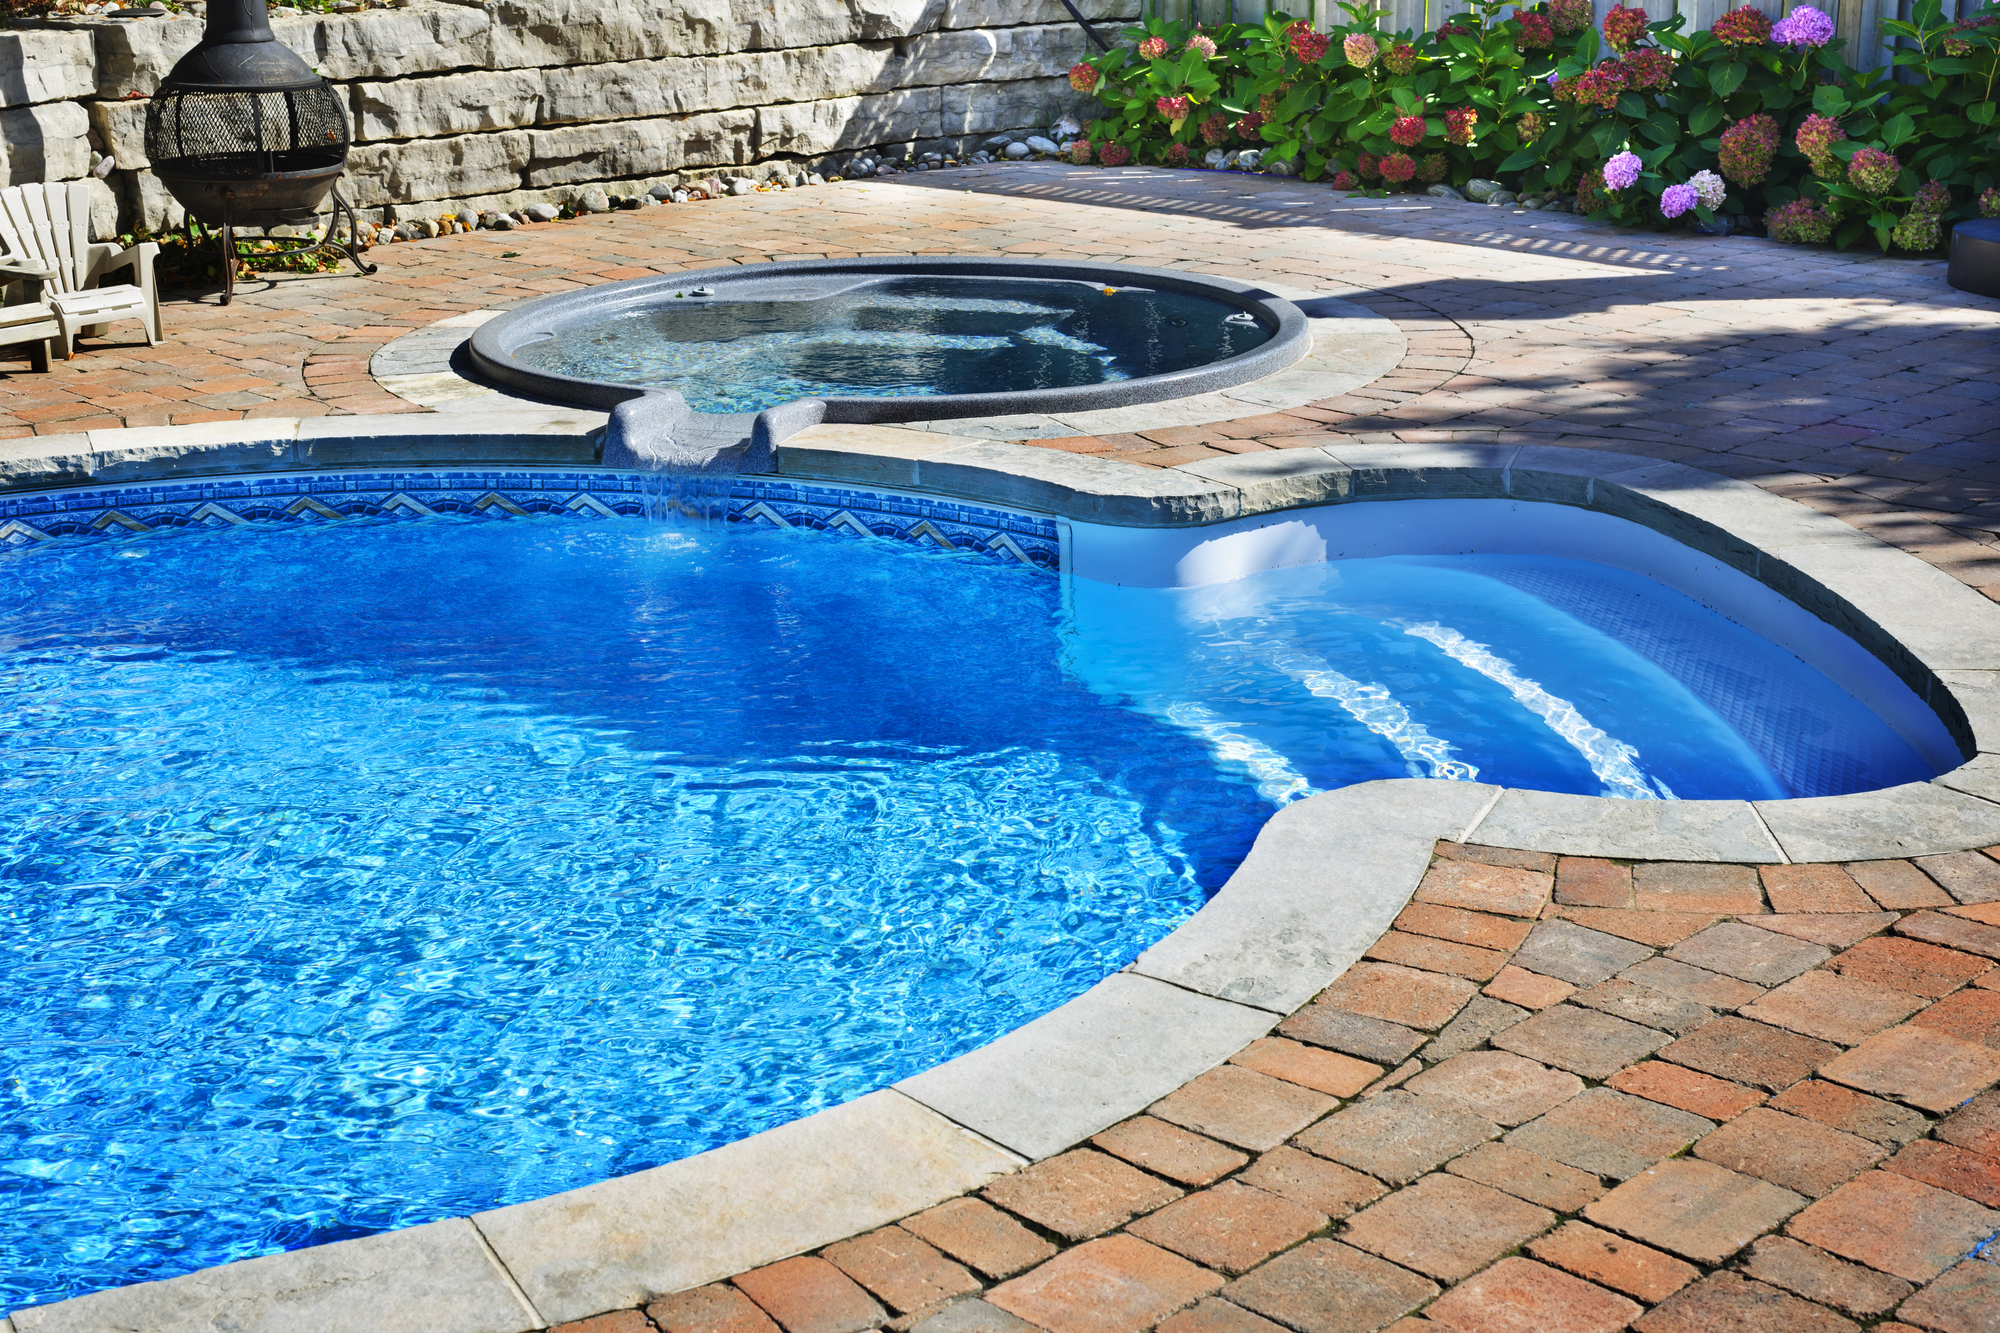 Where can I find the best homes for sale with a pool in west palm beach?